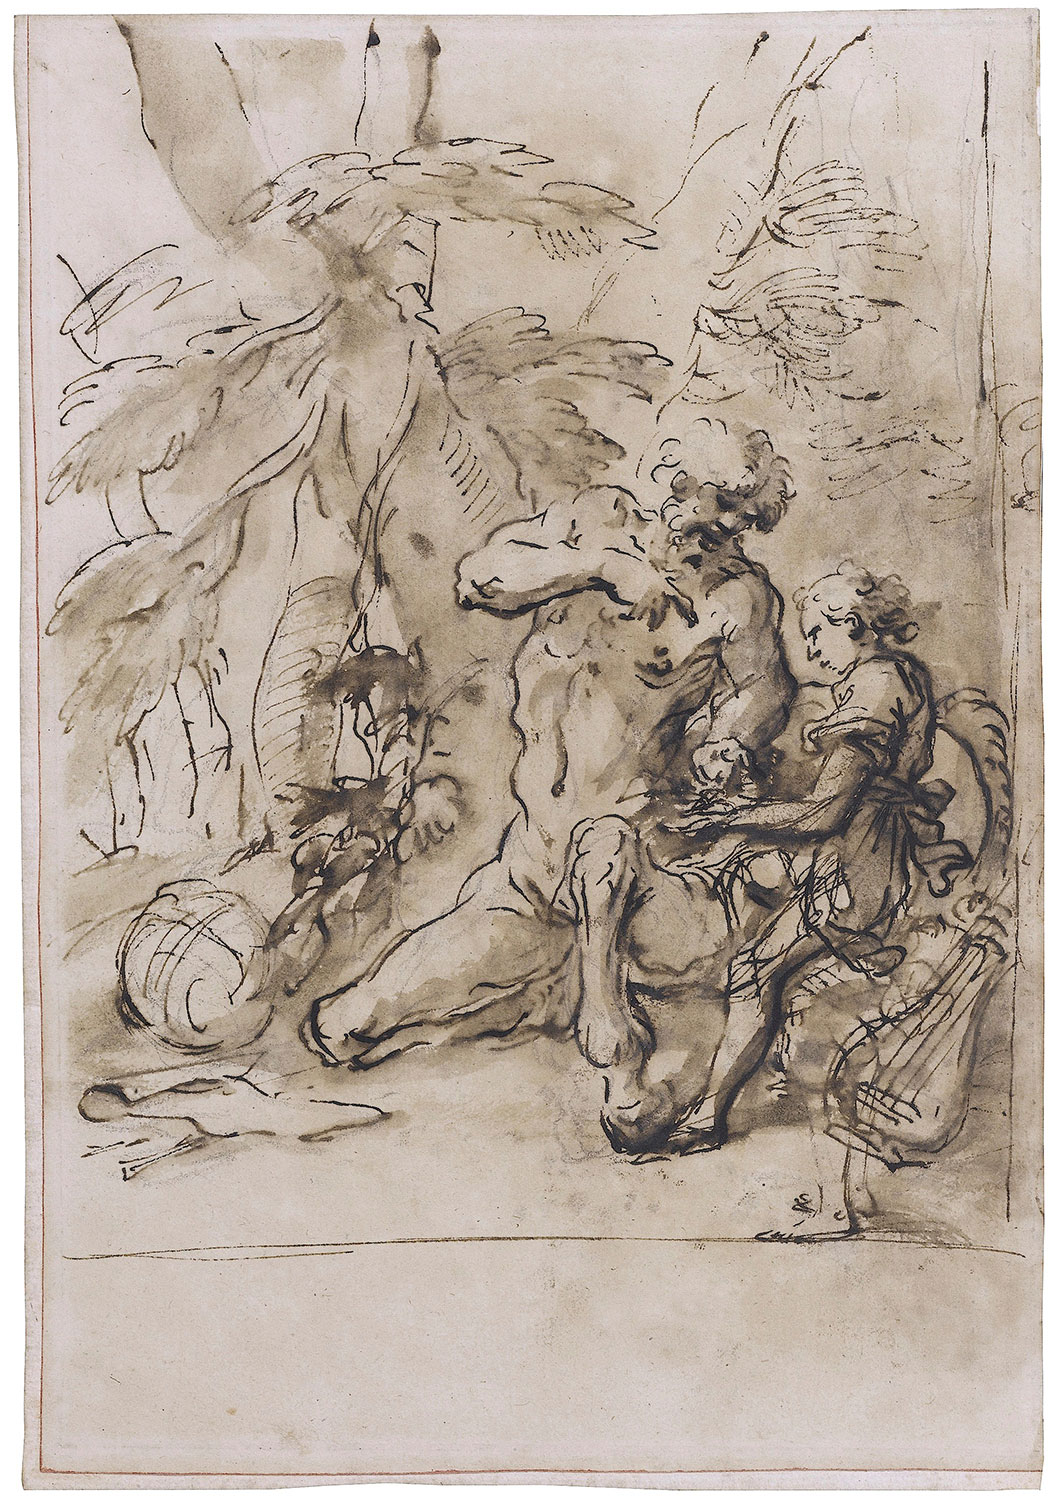 Salvator Rosa, Chiron the Centaur Teaching the Young Achilles, c. 1666. Brown ink and brown wash over black chalk. Harvard Art Museums/Fogg Museum, Richard Norton Fund, 2017.82.